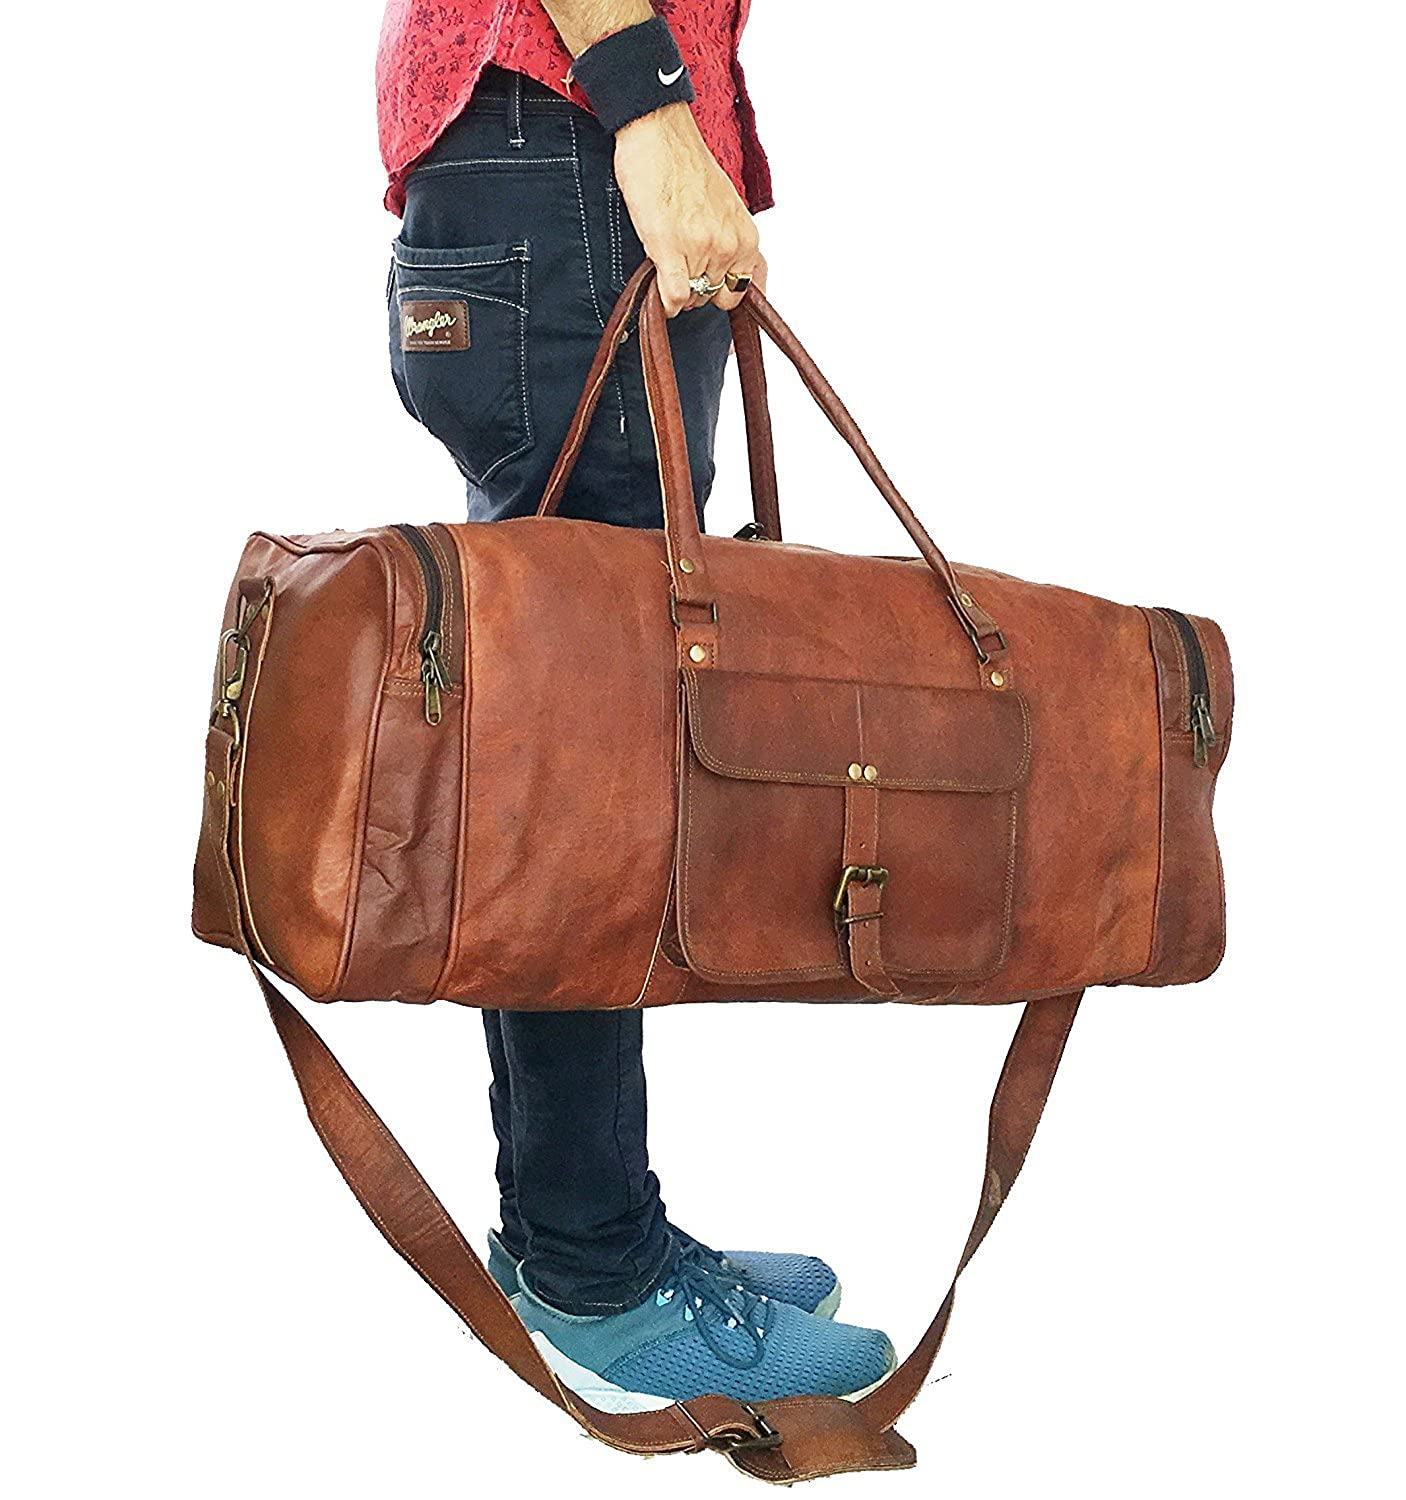 26 Inch Square Duffel Travel Duffle Gym Sports Overnight Weekend Leather Bag